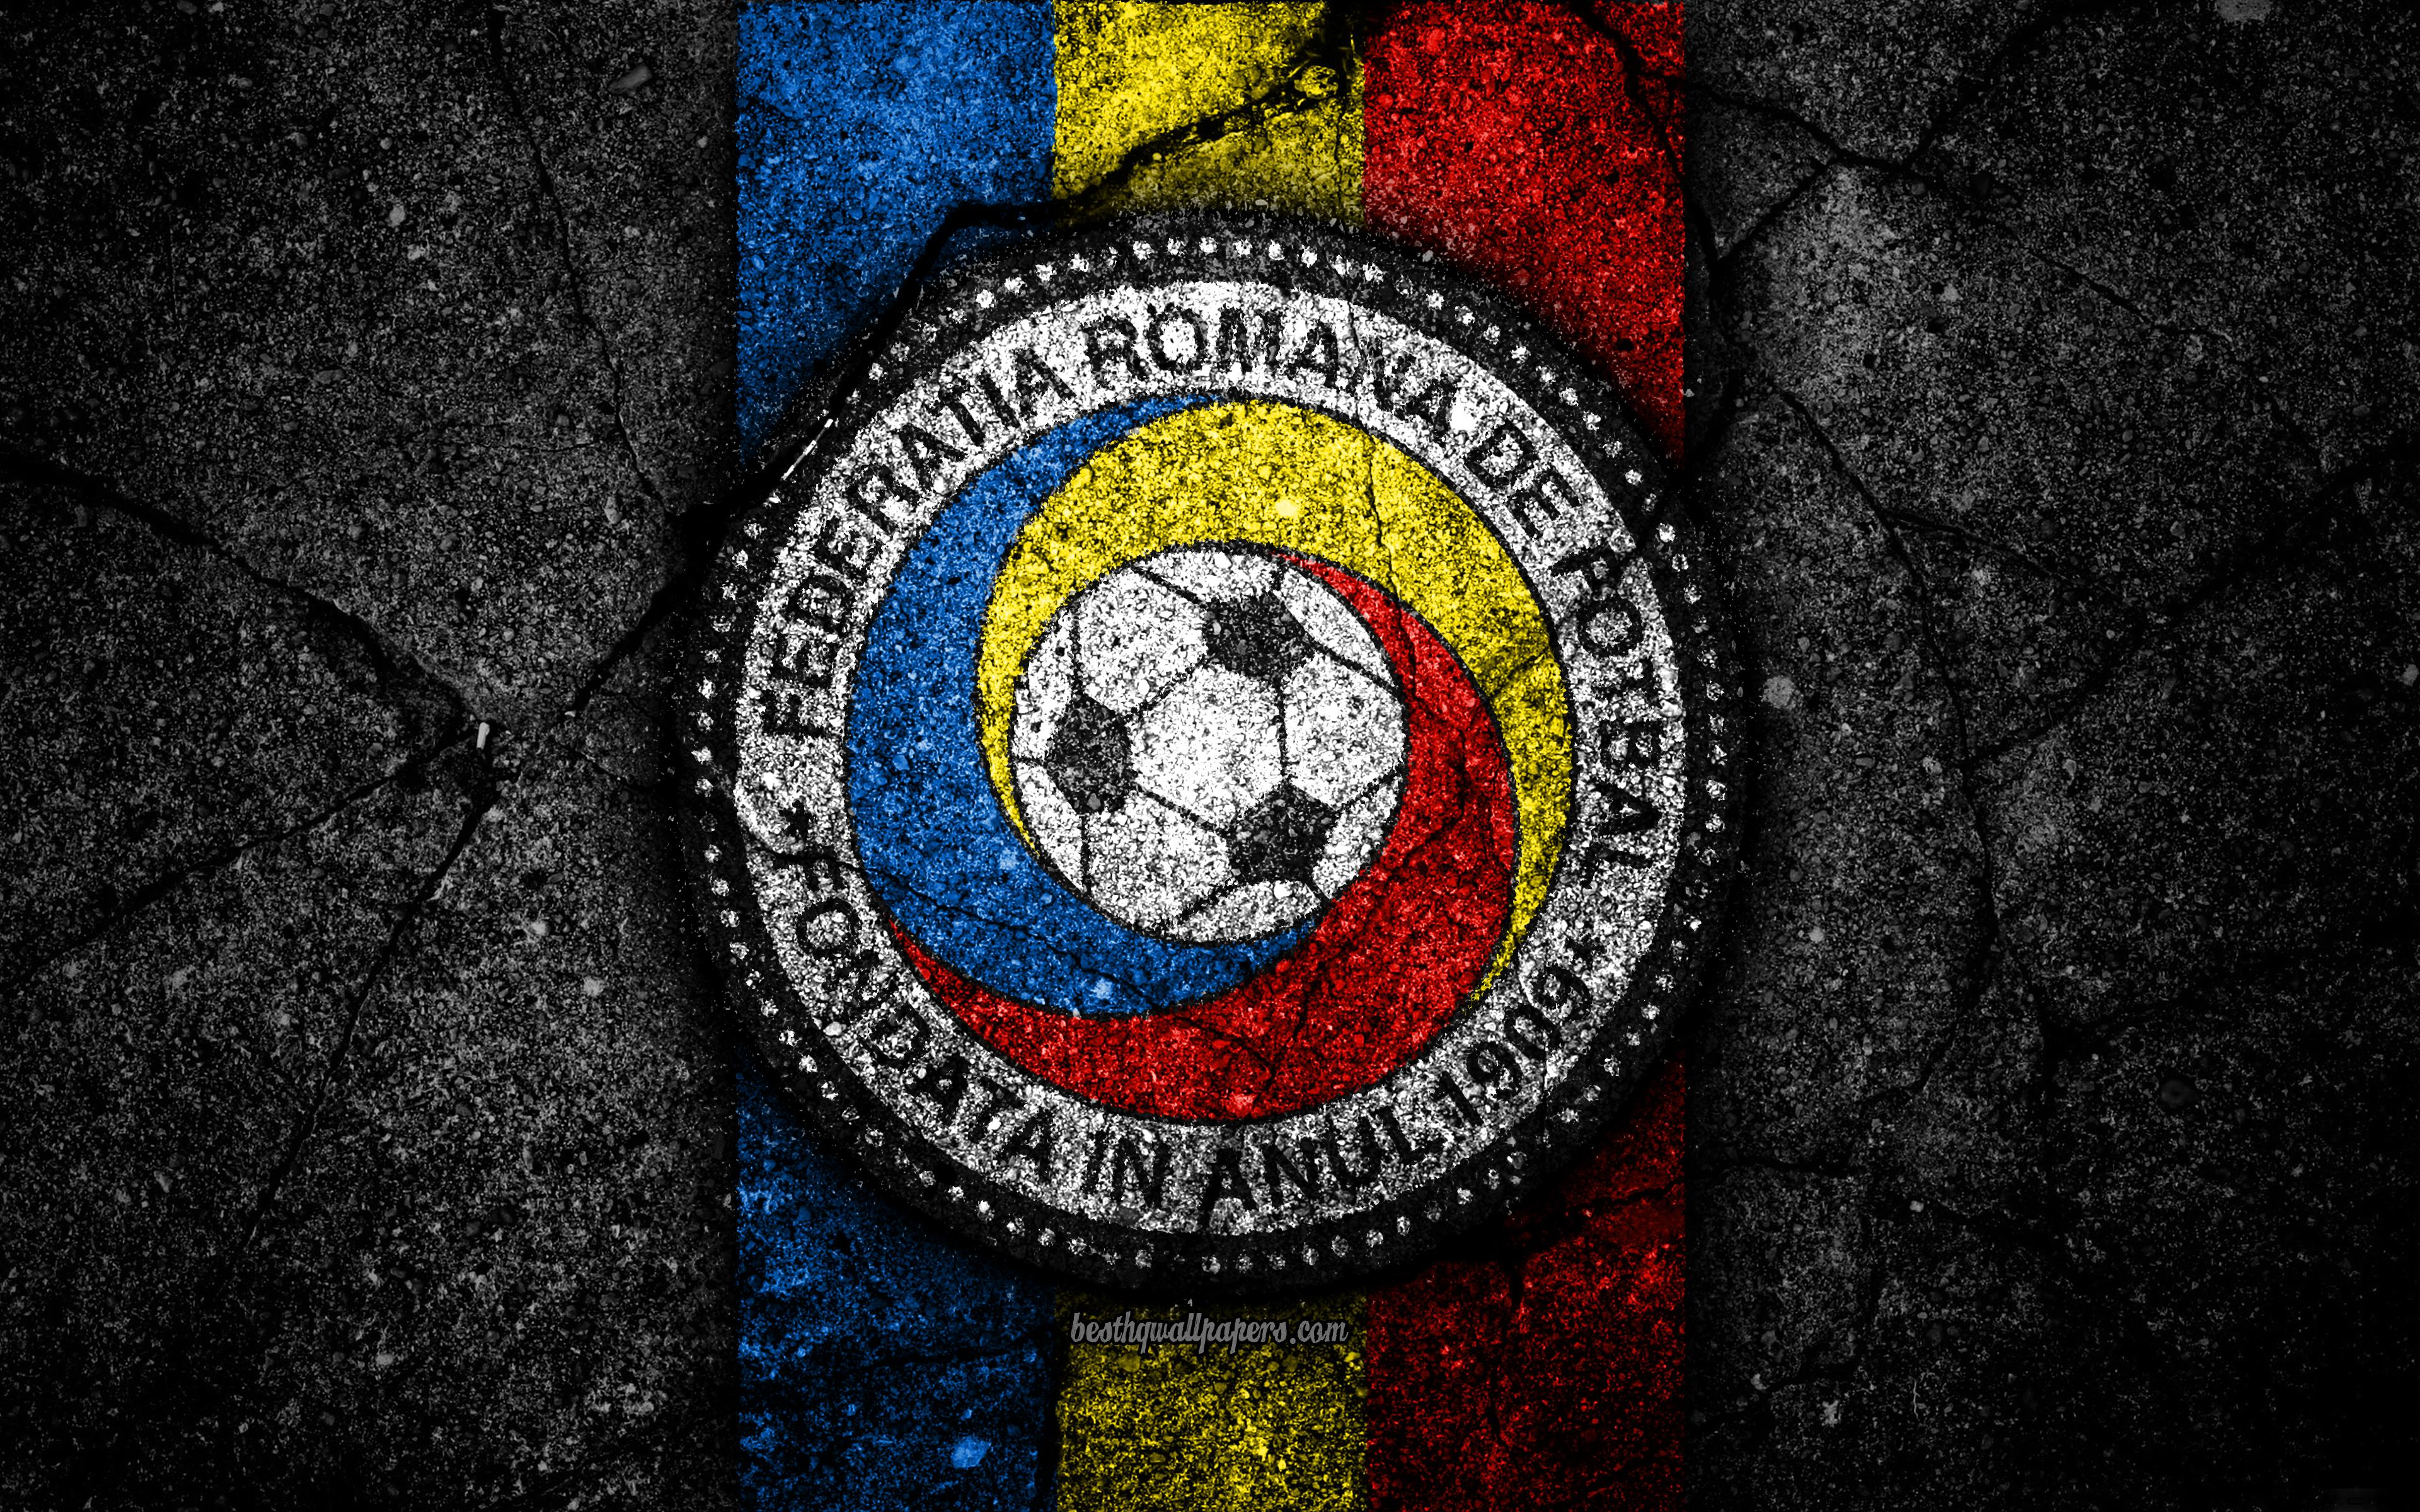 Romania National Football Team Zoom Backgrounds 2